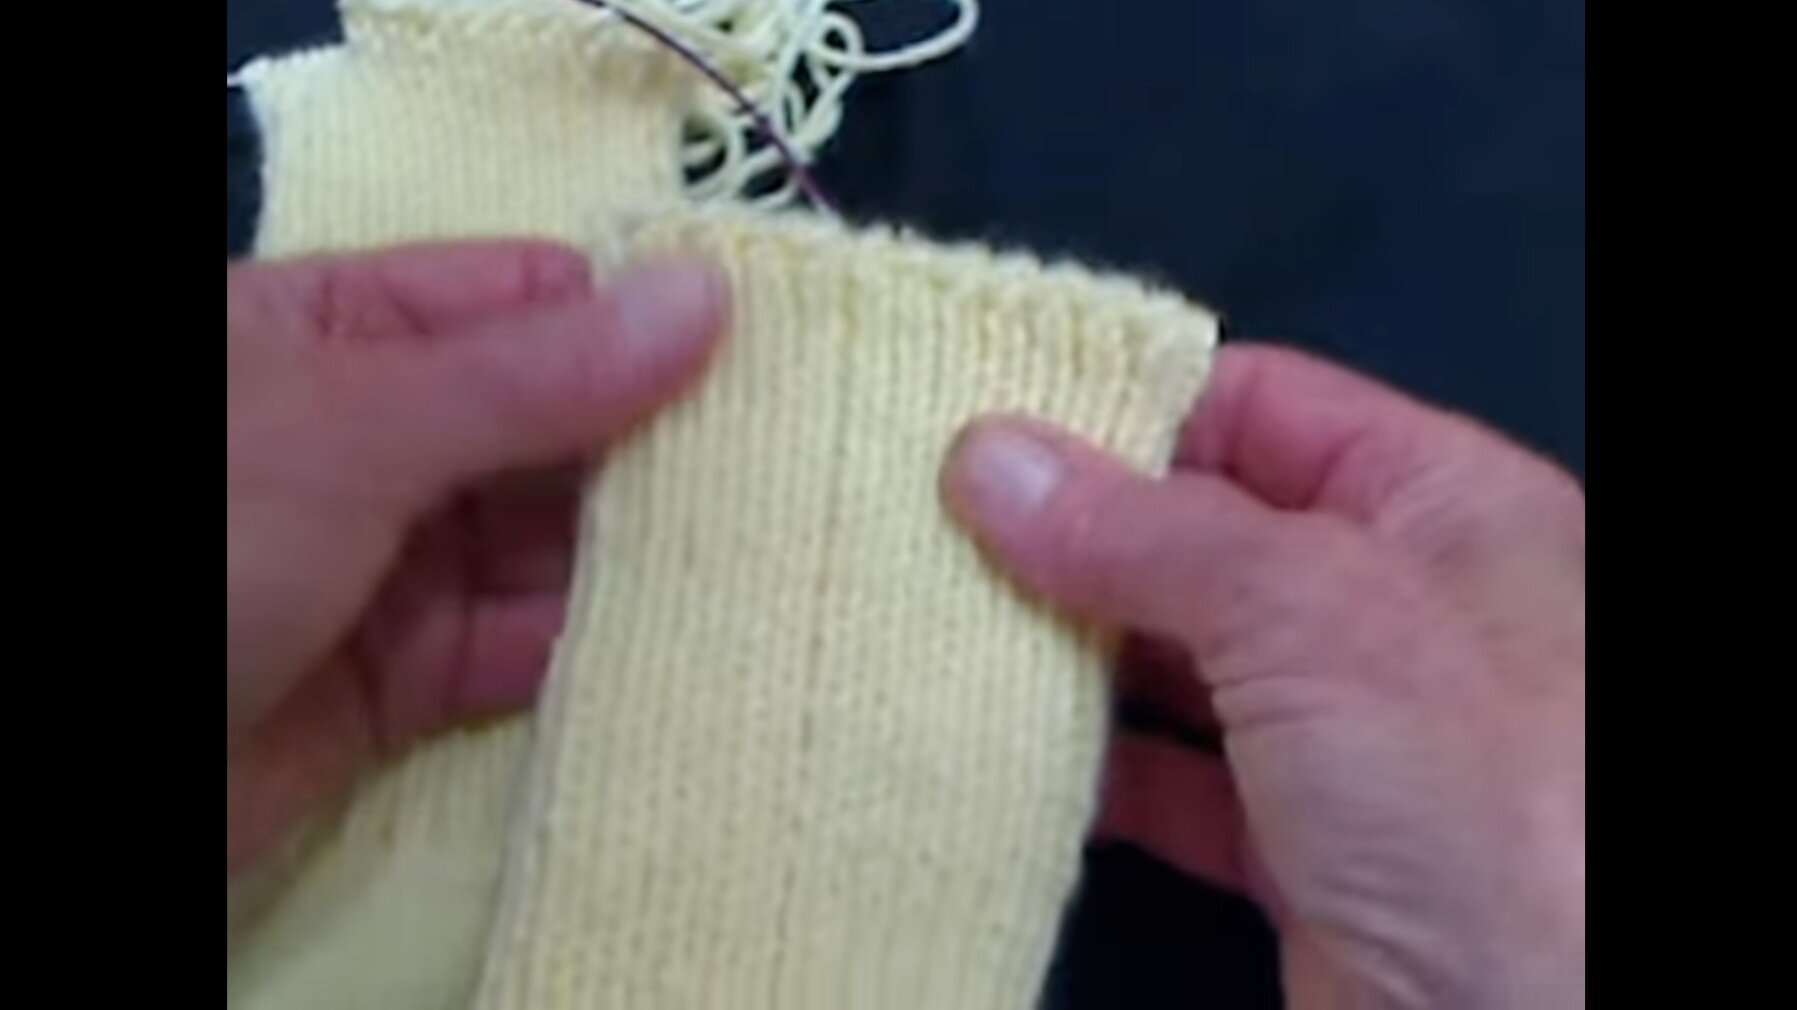 Screenshot from video of knitter showing the bound off top edge of a knitted yellow sock